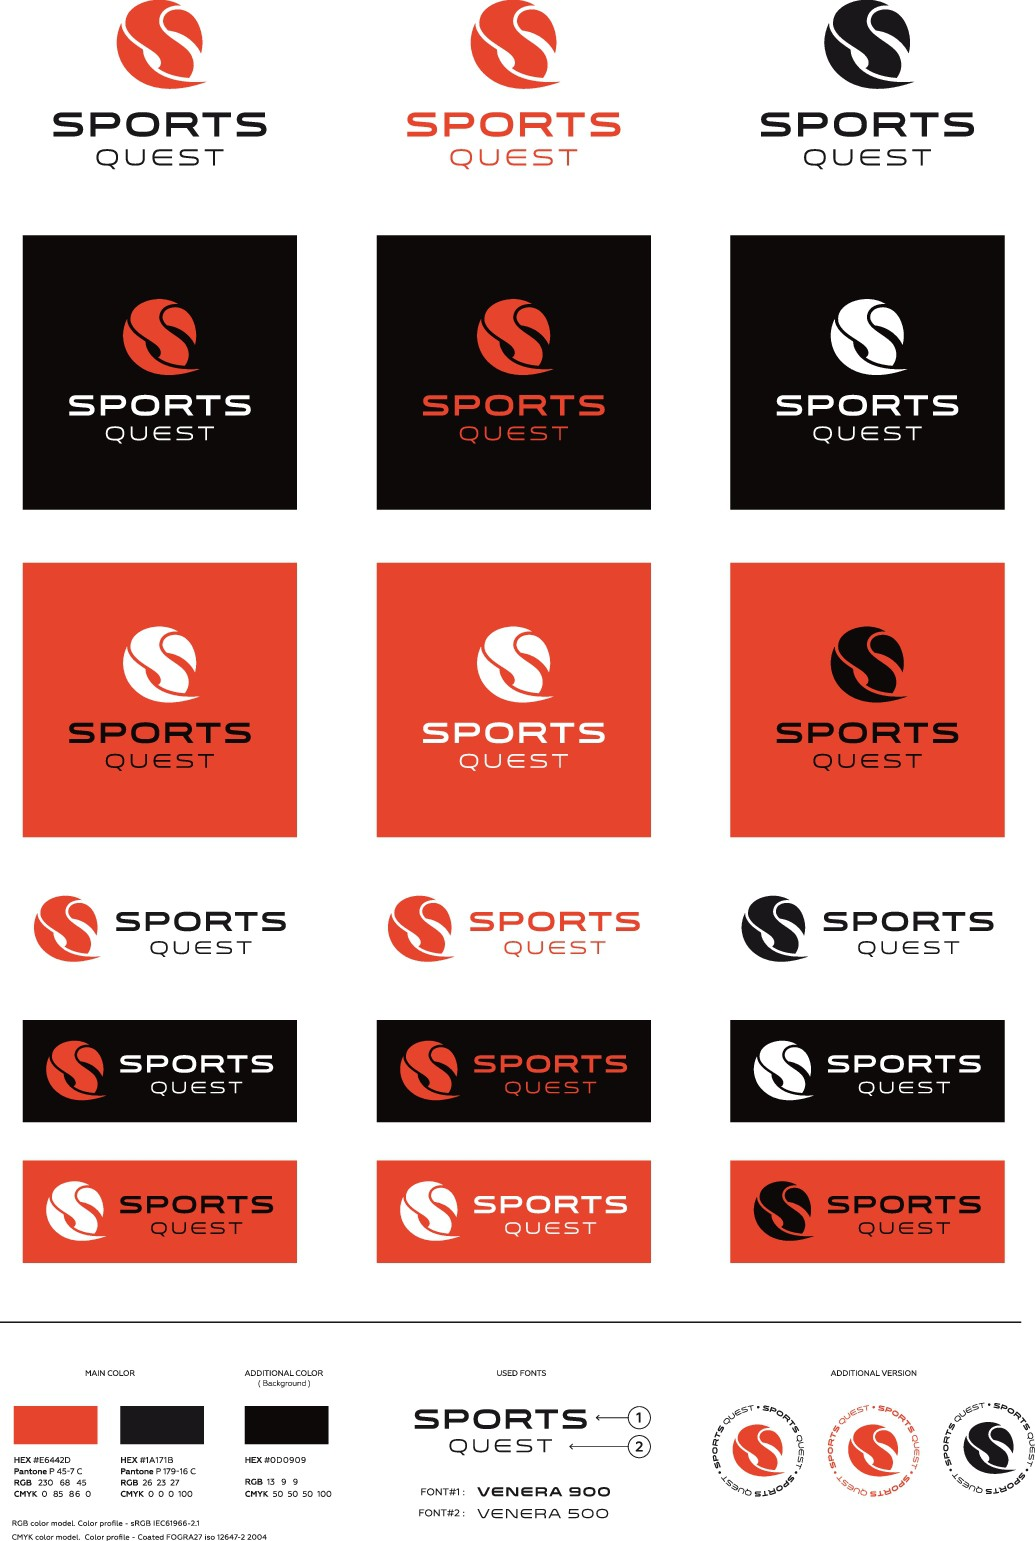 Design compelling brand for sports and recreation start-up